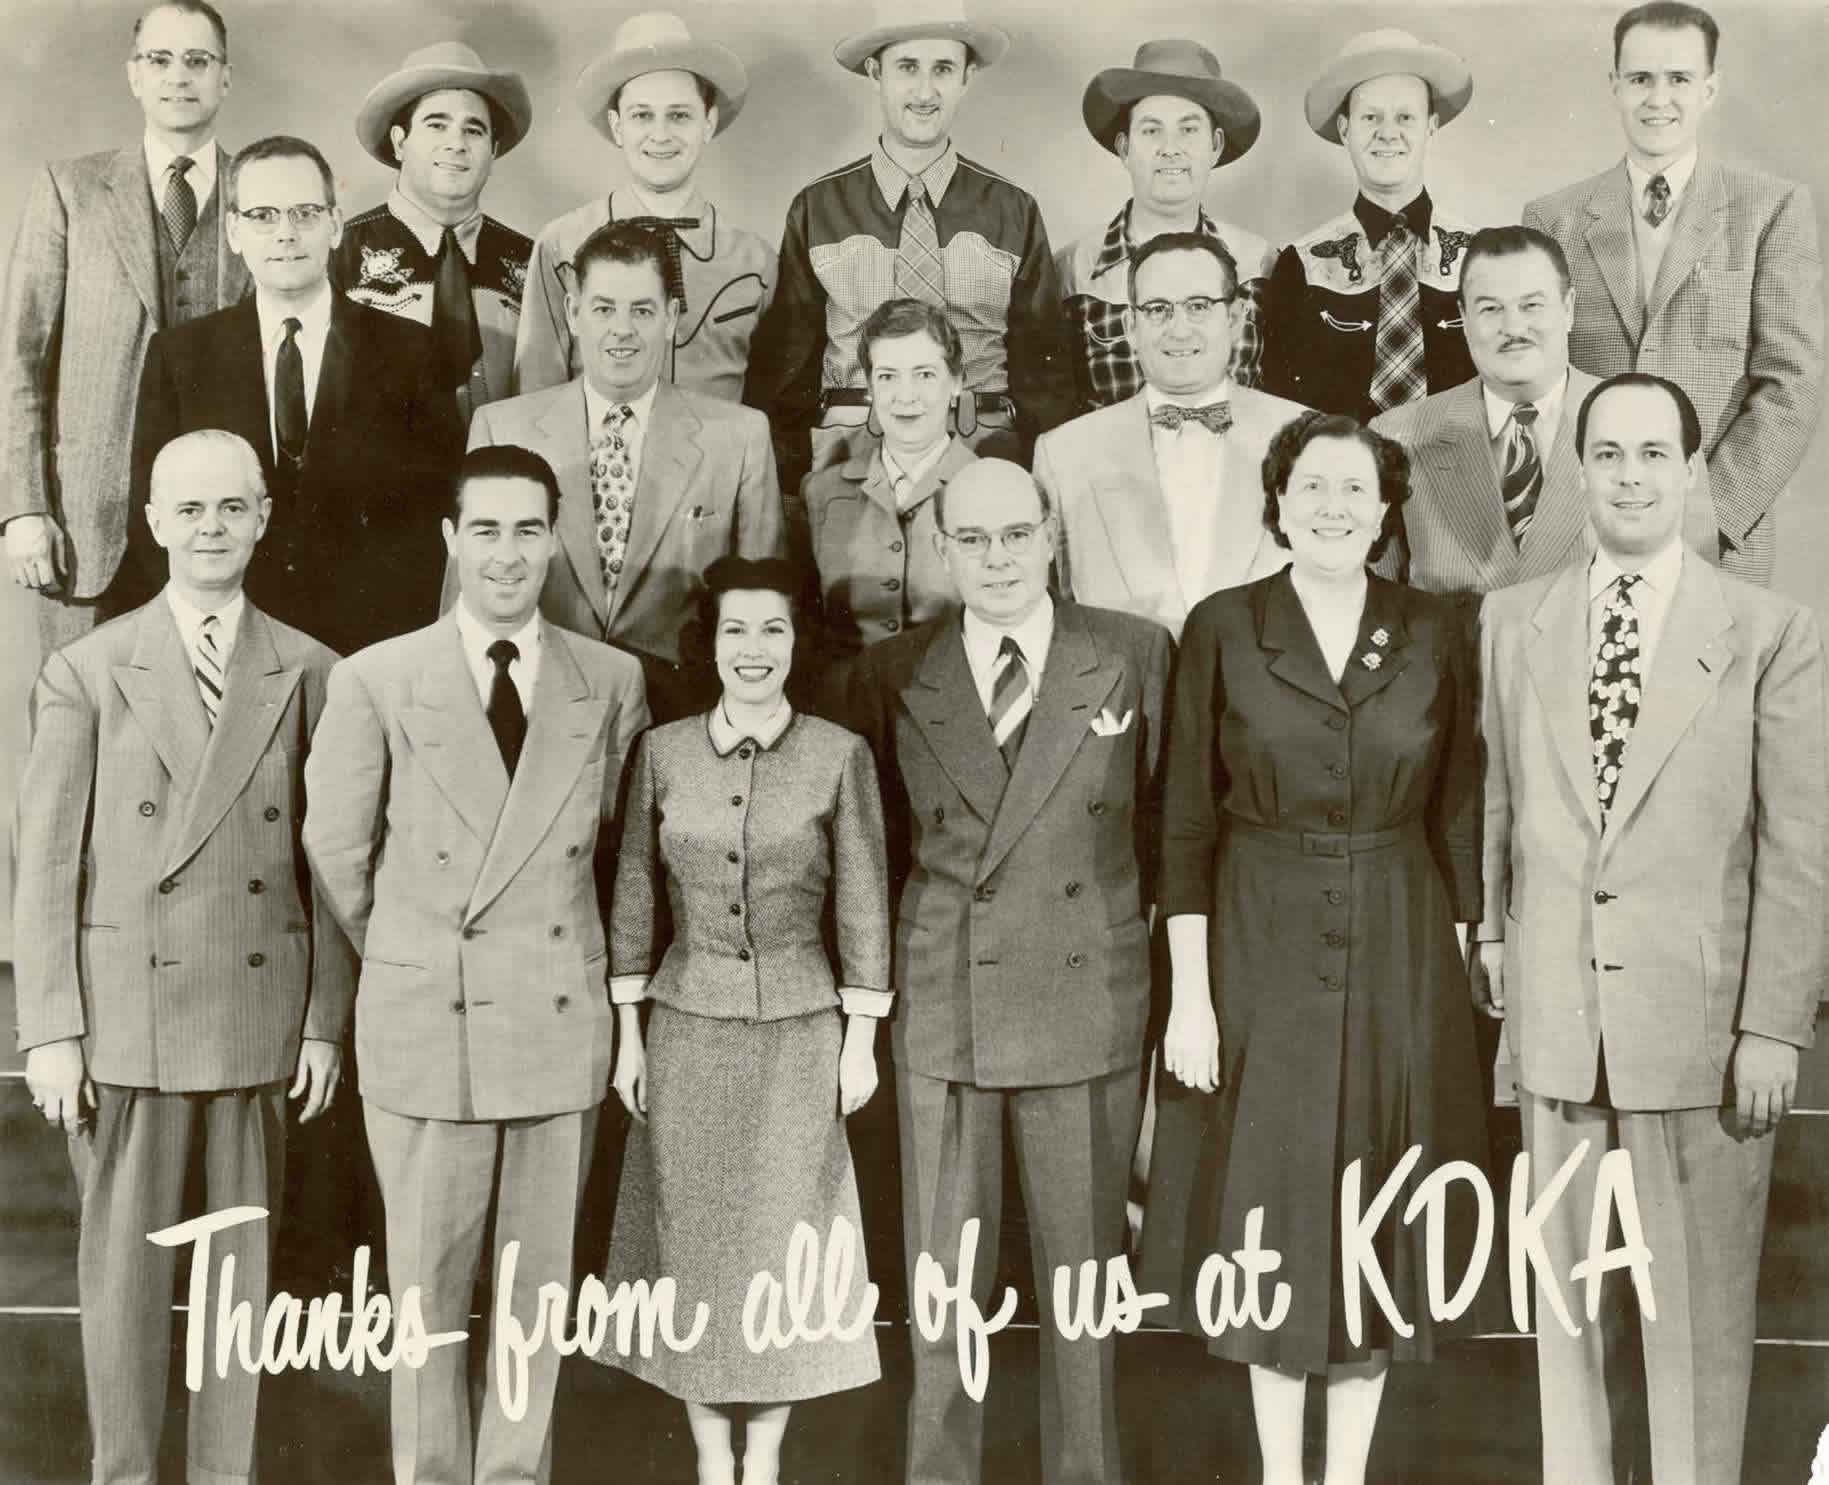 The KDKA Staff in the 1940s